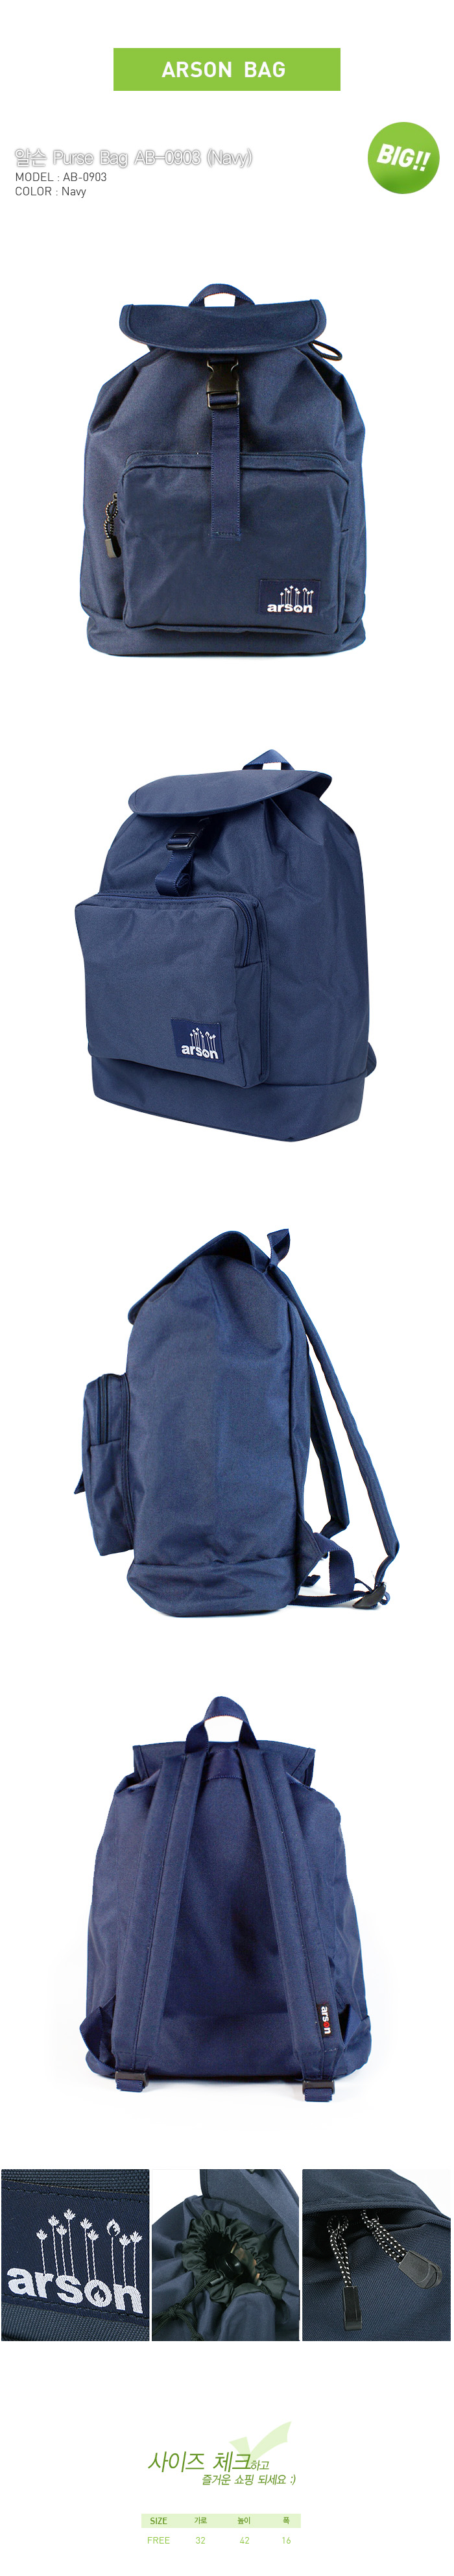 [ ARSON ] AB-0903 (Navy)/Backpack School Bag